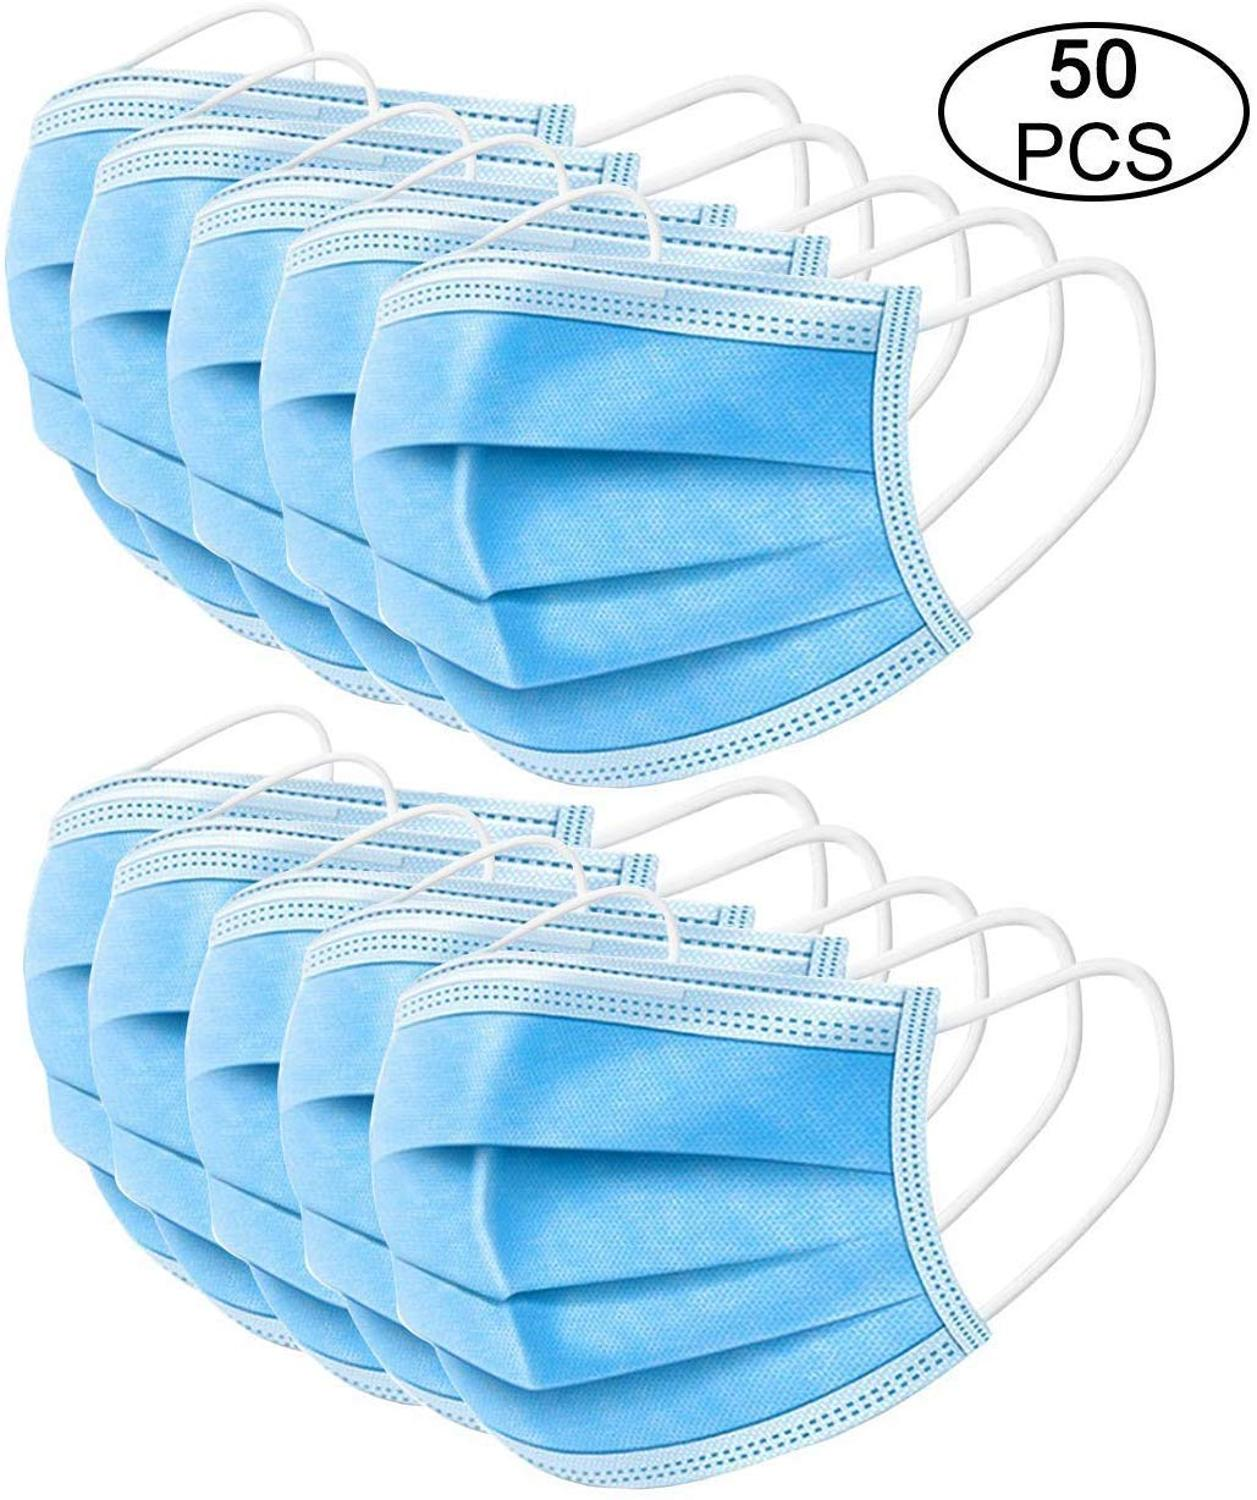 50pcs Face Mouth Anti Virus Mask Disposable Protect 3 Layers Filter Dustproof Earloop Non Woven Mouth Masks